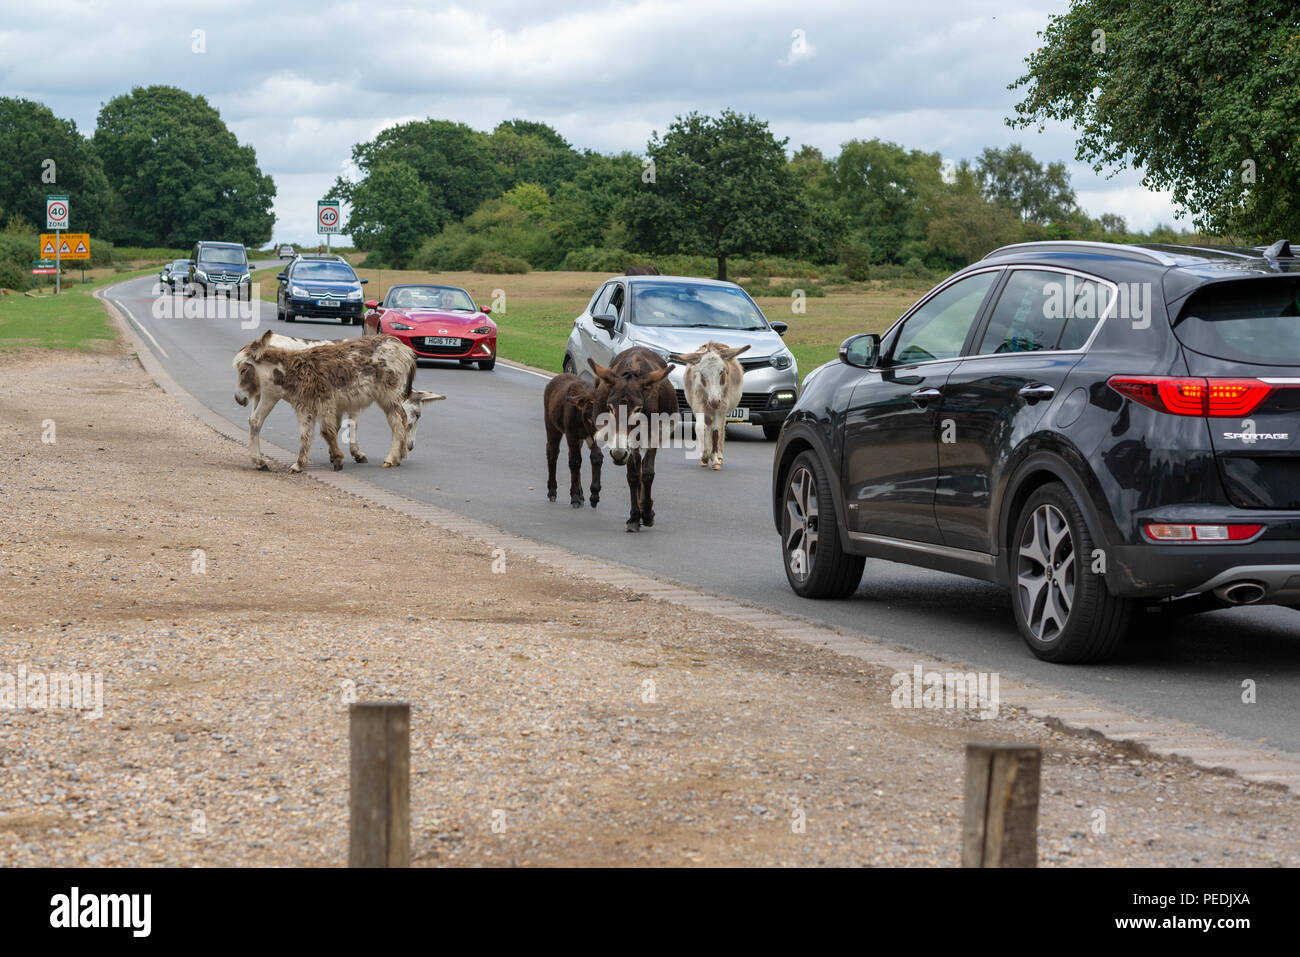 New Cars Uk Stock Photos Amp New Cars Uk Stock Images Page 2 Alamy